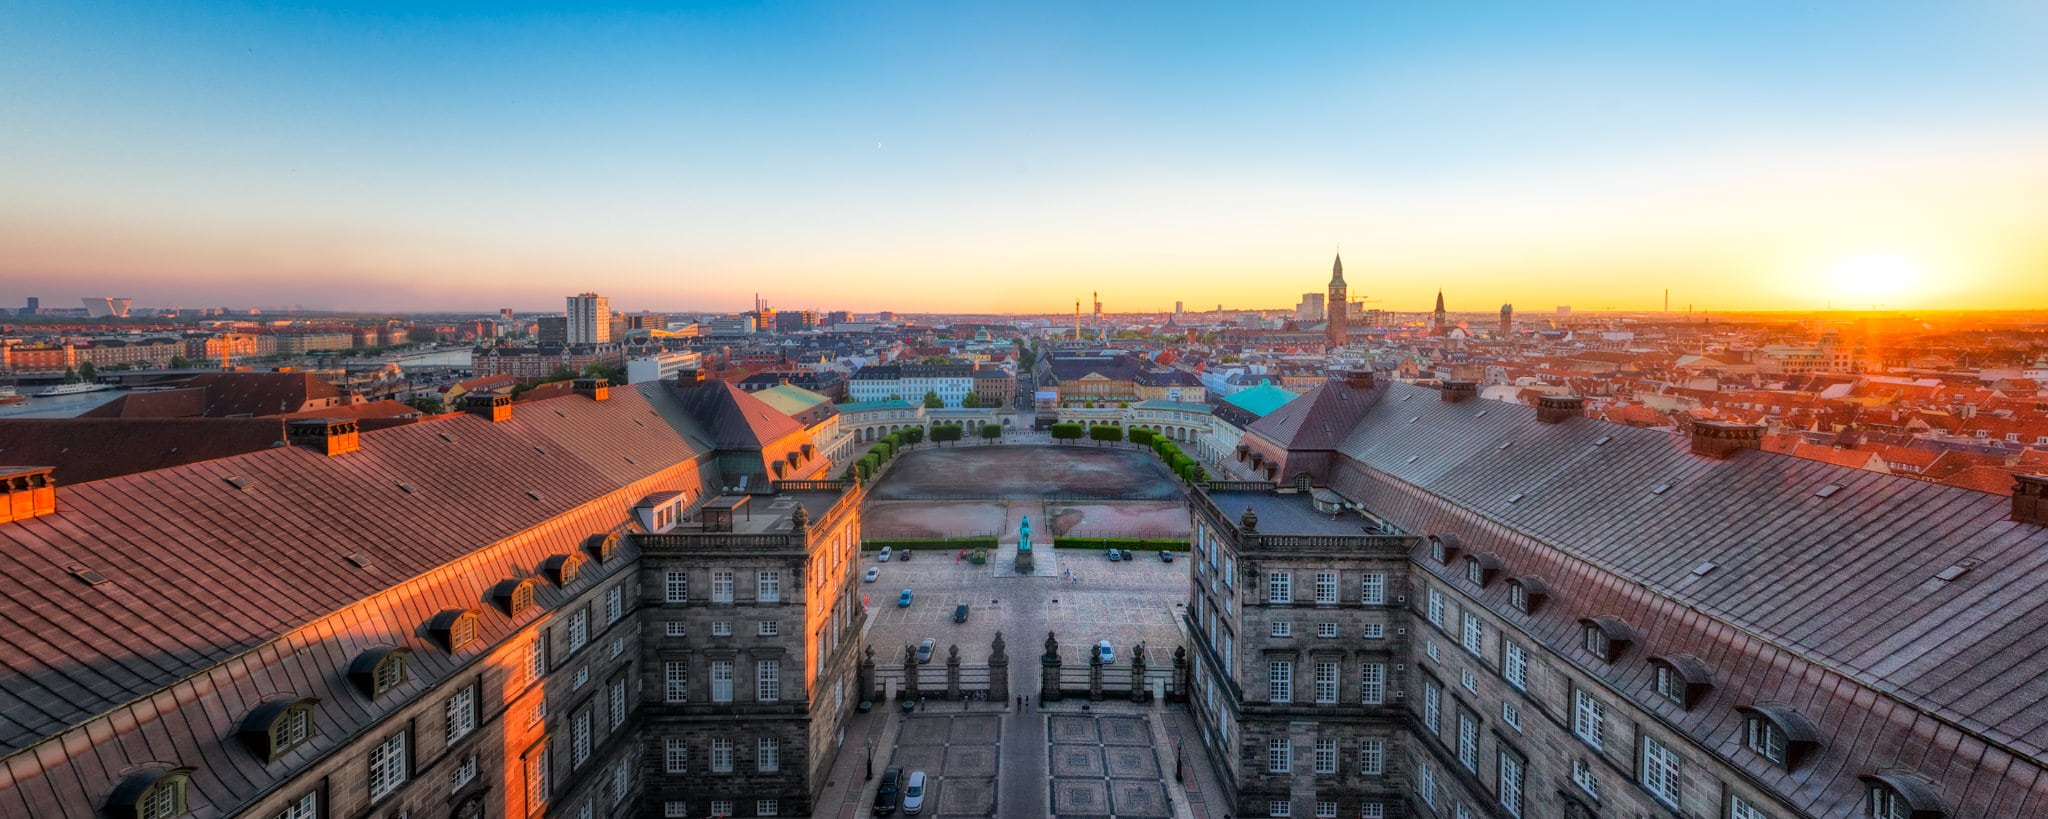 Copenhagen sunset skyline from Christiansborg Palace, Denmark